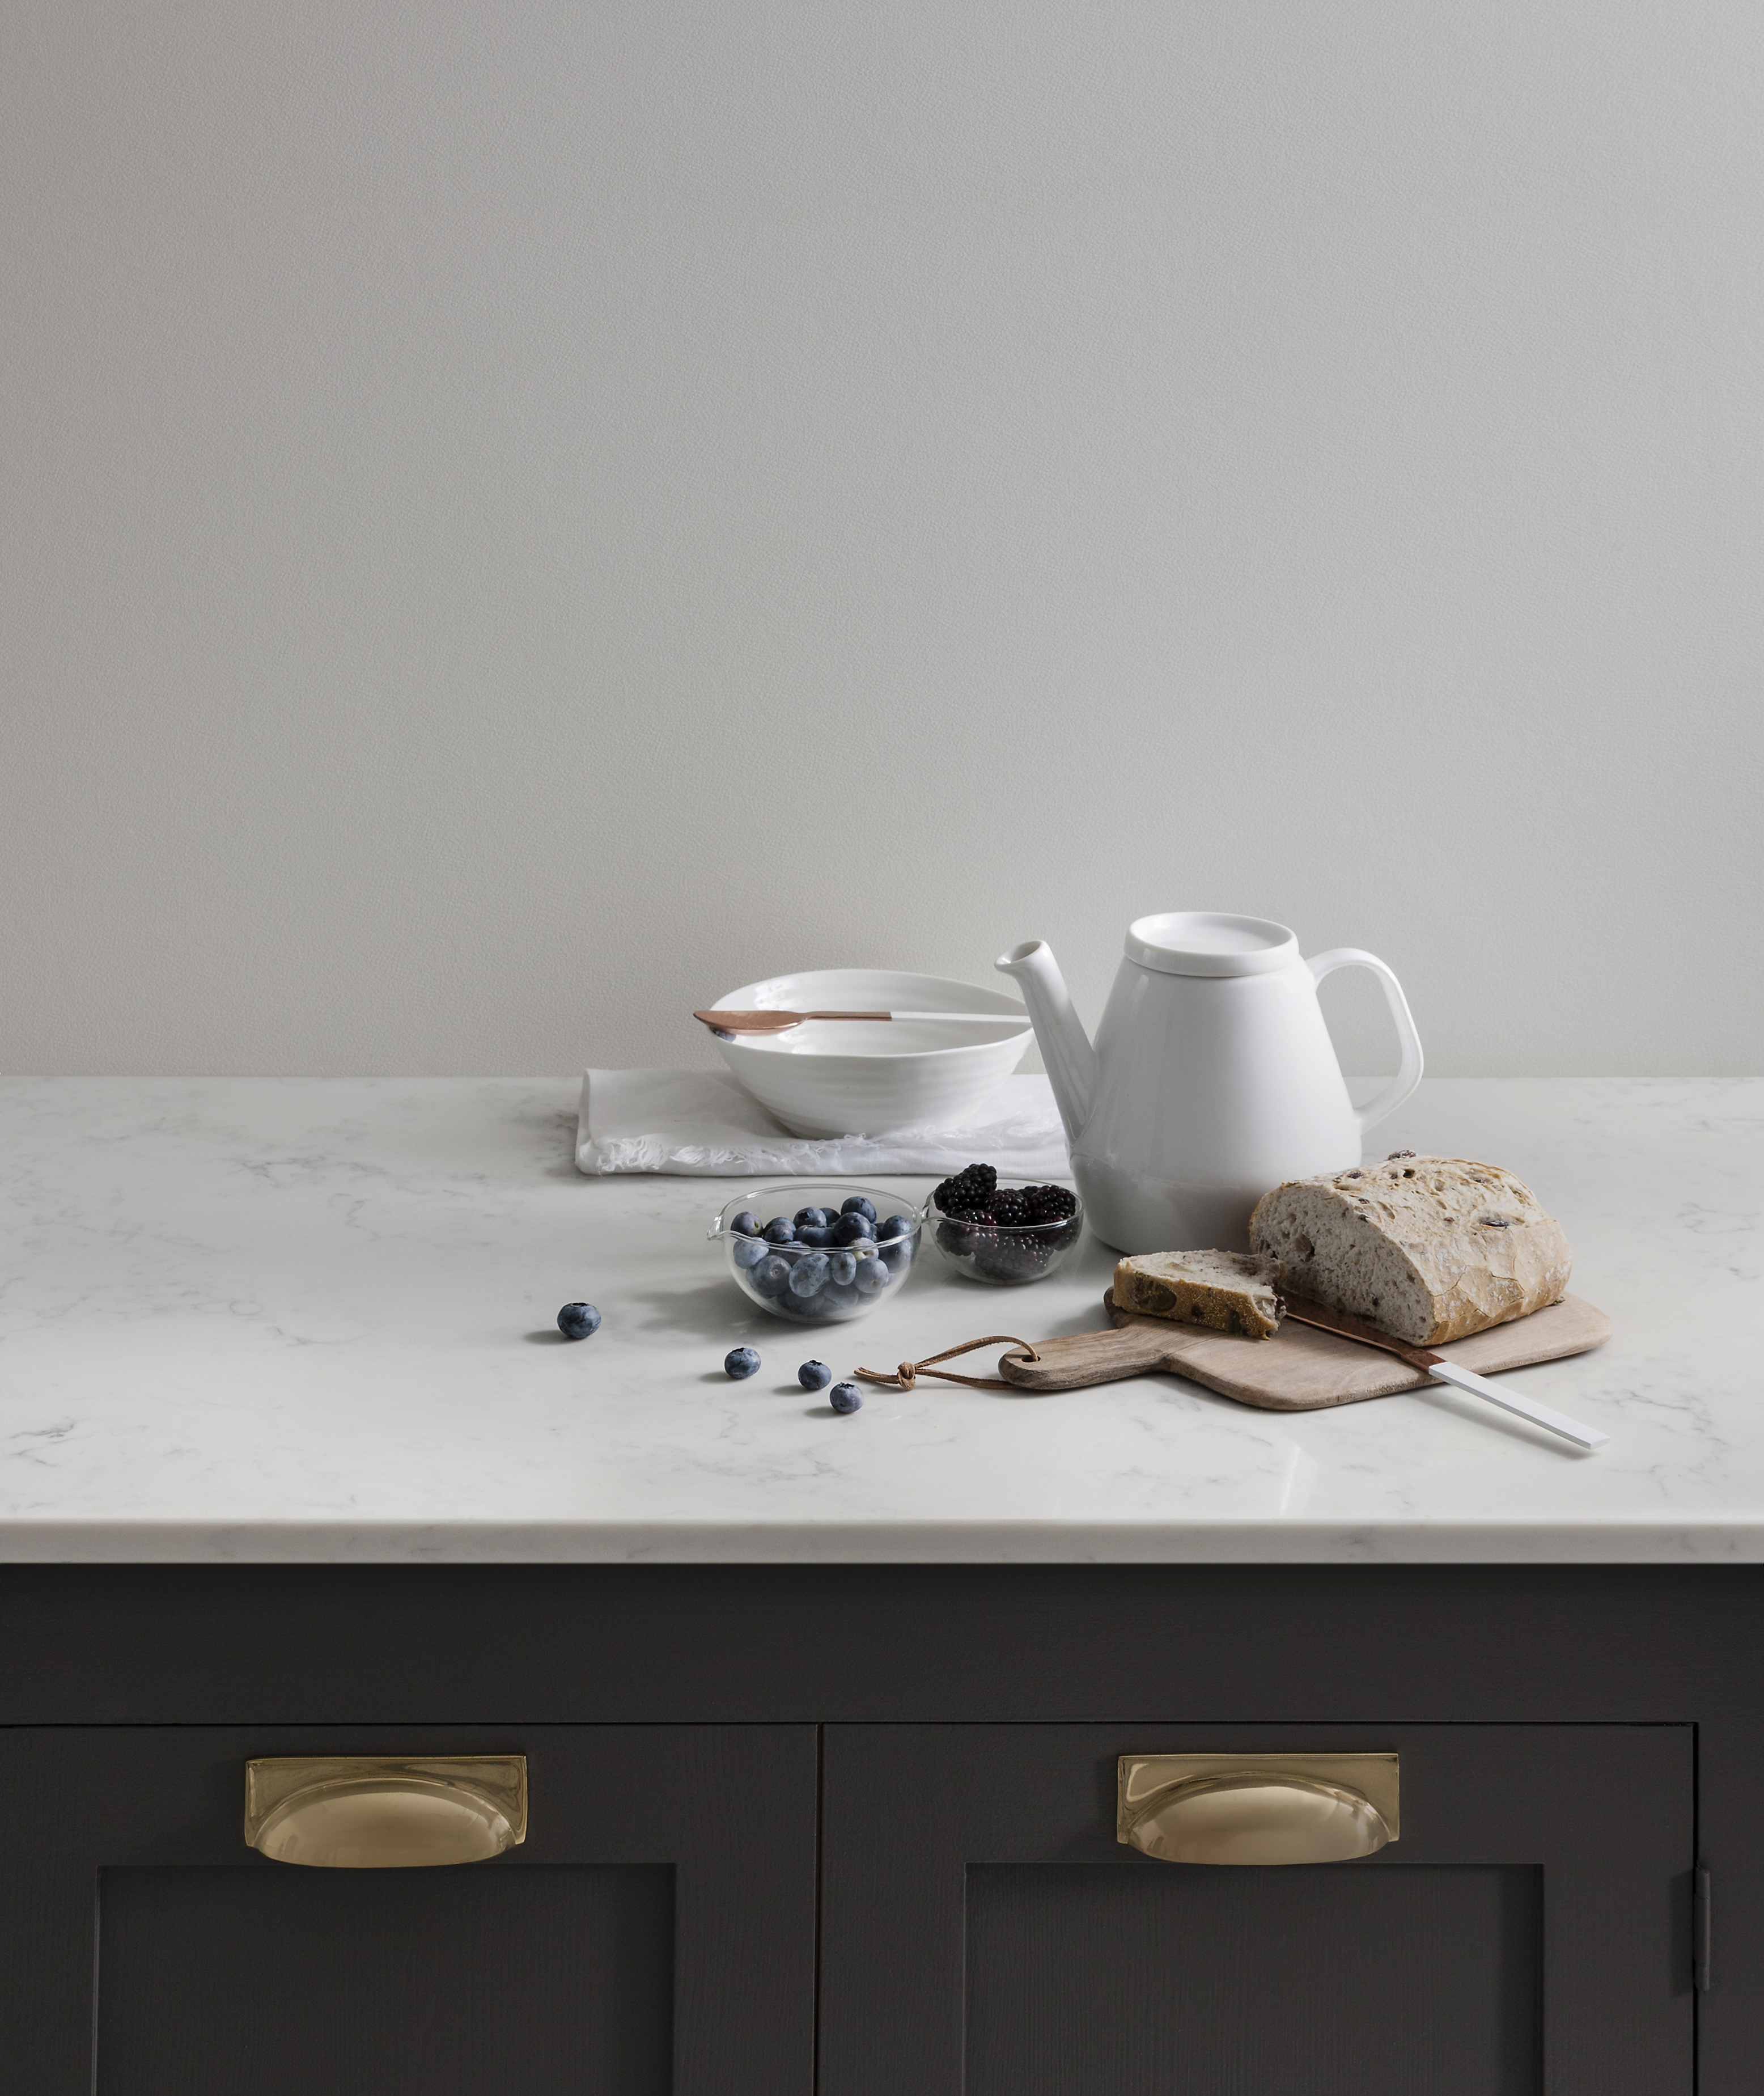 Marble-Effect Quartz Surfaces from Radianz